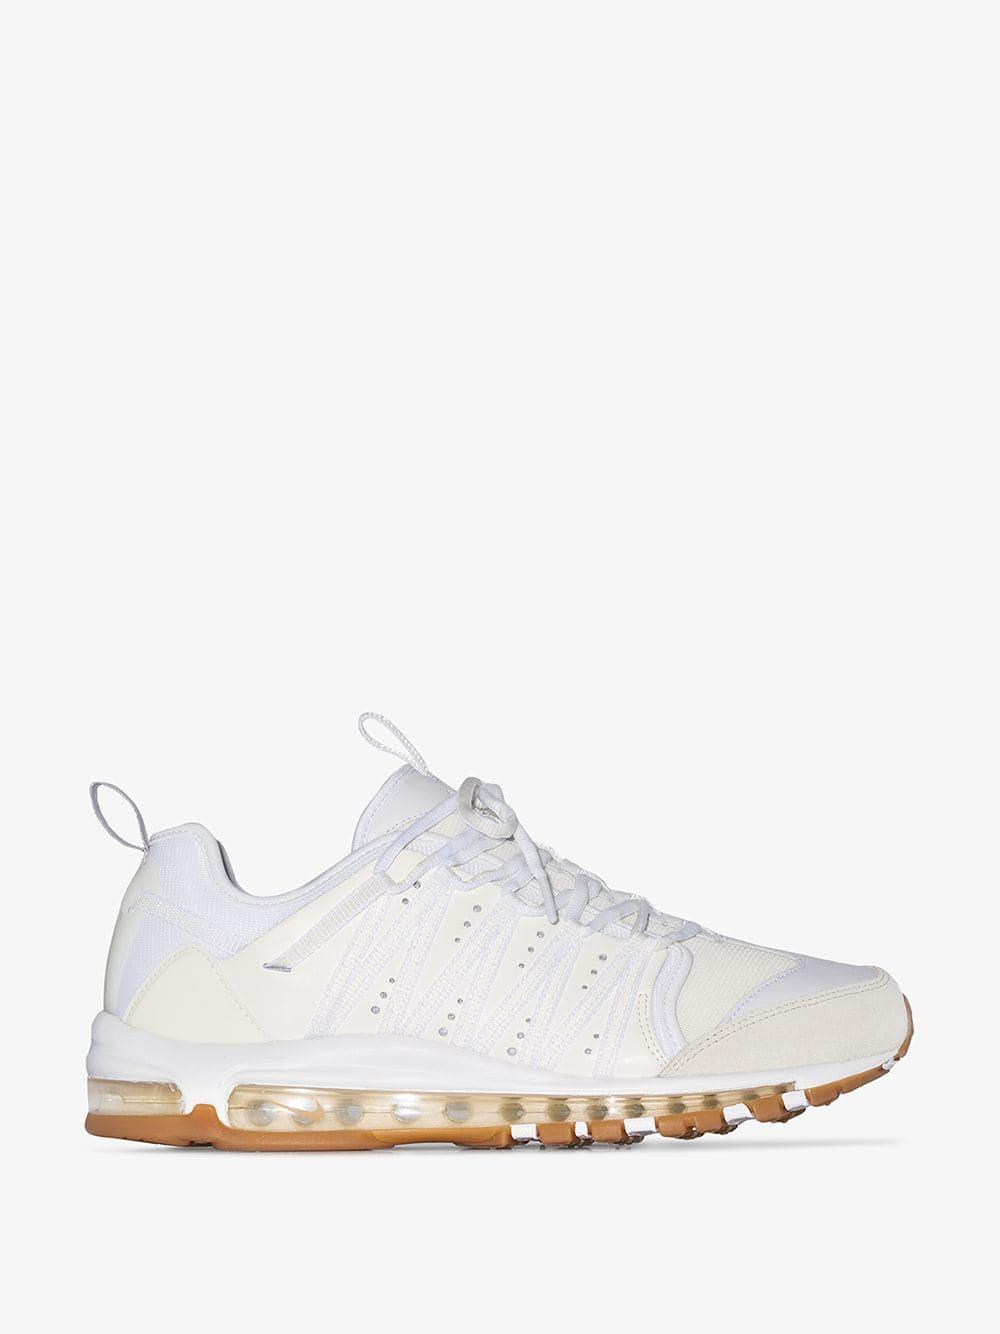 c27029c7 Nike X Clot White Air Max 97 Low Top Sneakers in White for Men - Lyst